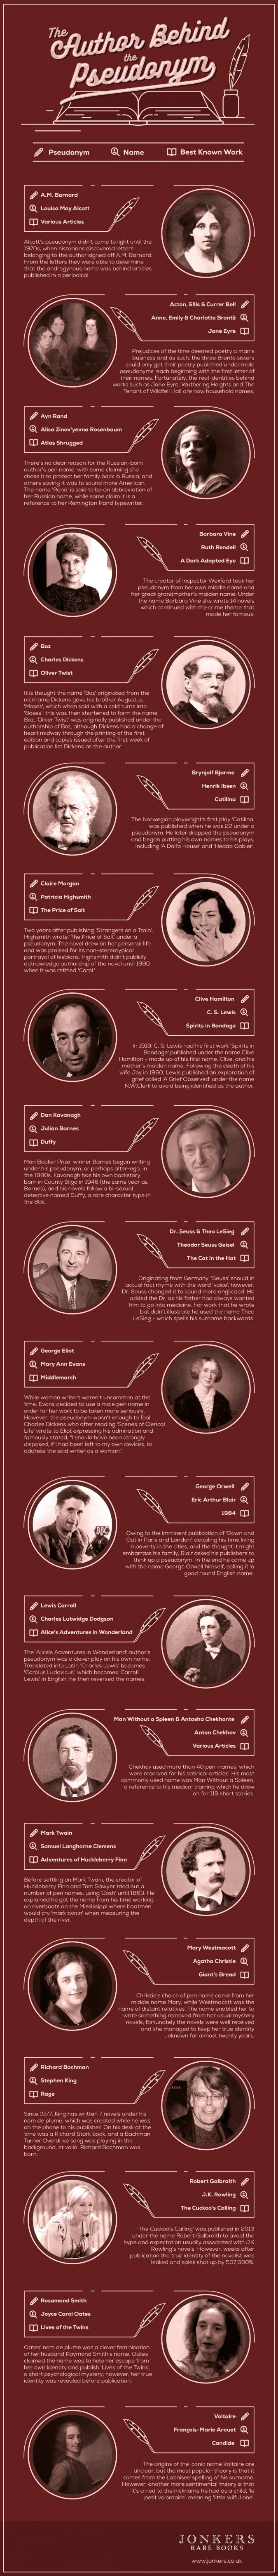 The Author Behind the Pseudonym #Infographic #Literature